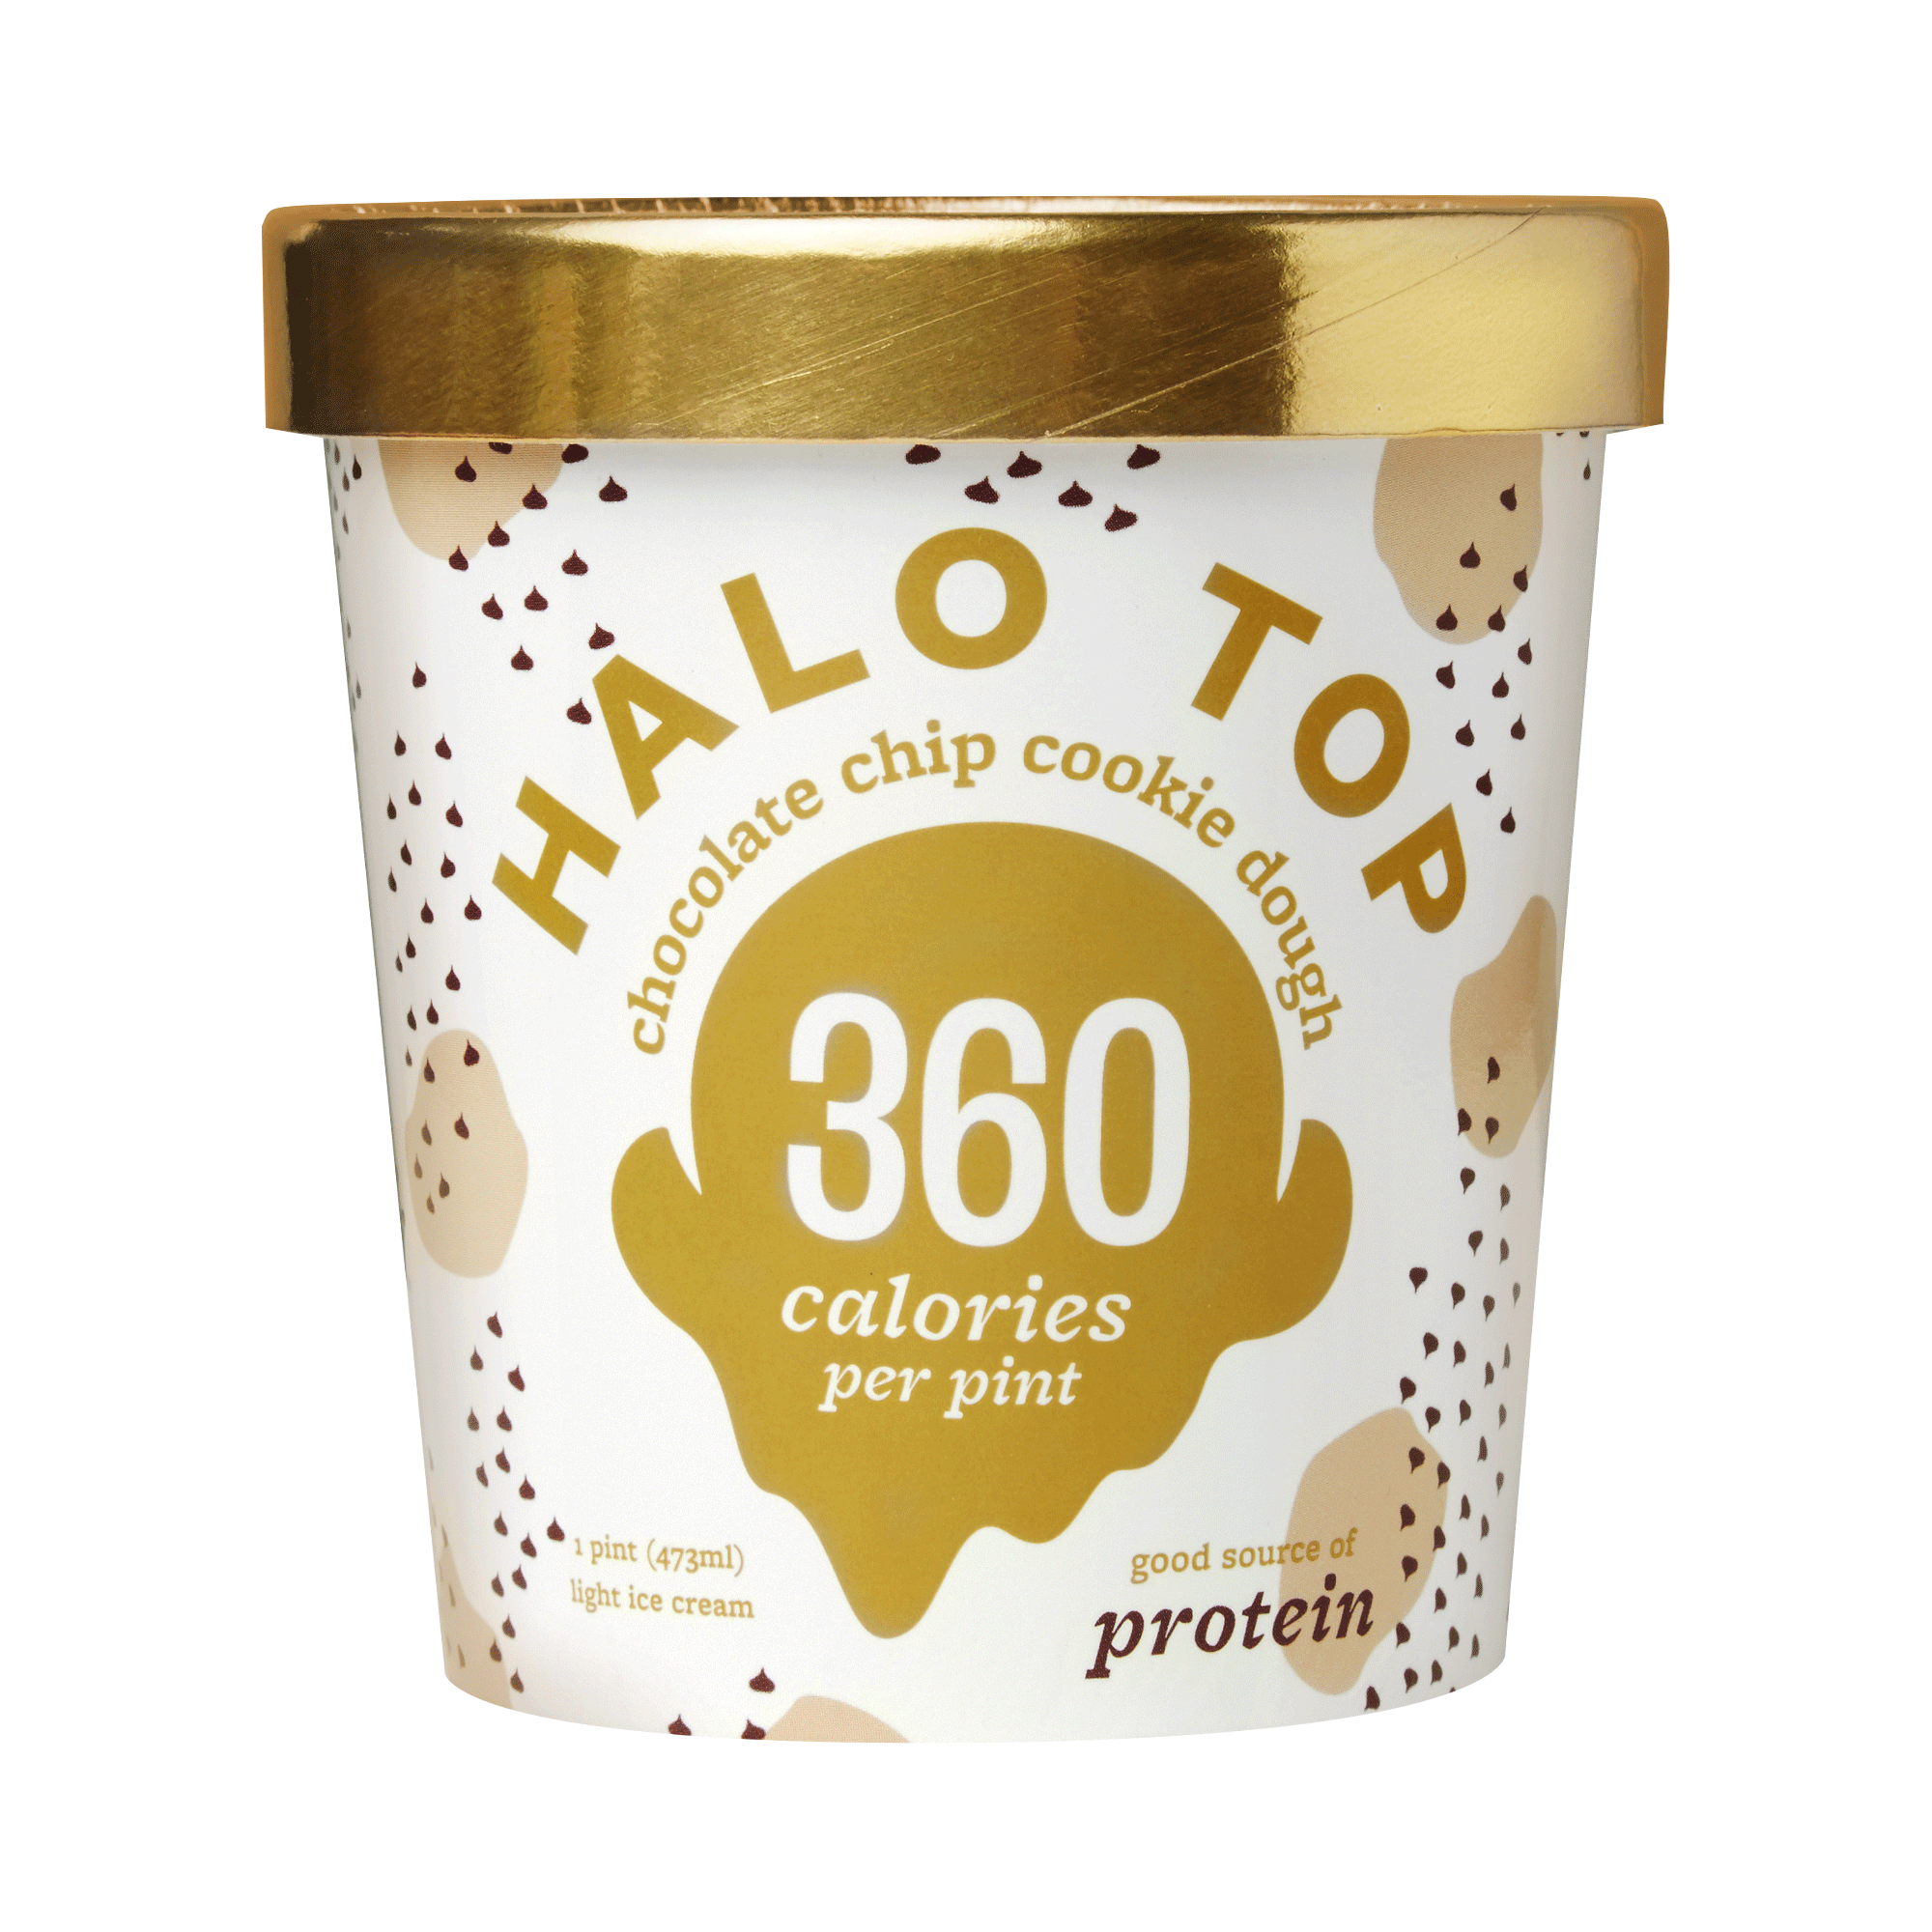 Halo Top Chocolate Chip Cookie Dough Ice Cream, 1 pint